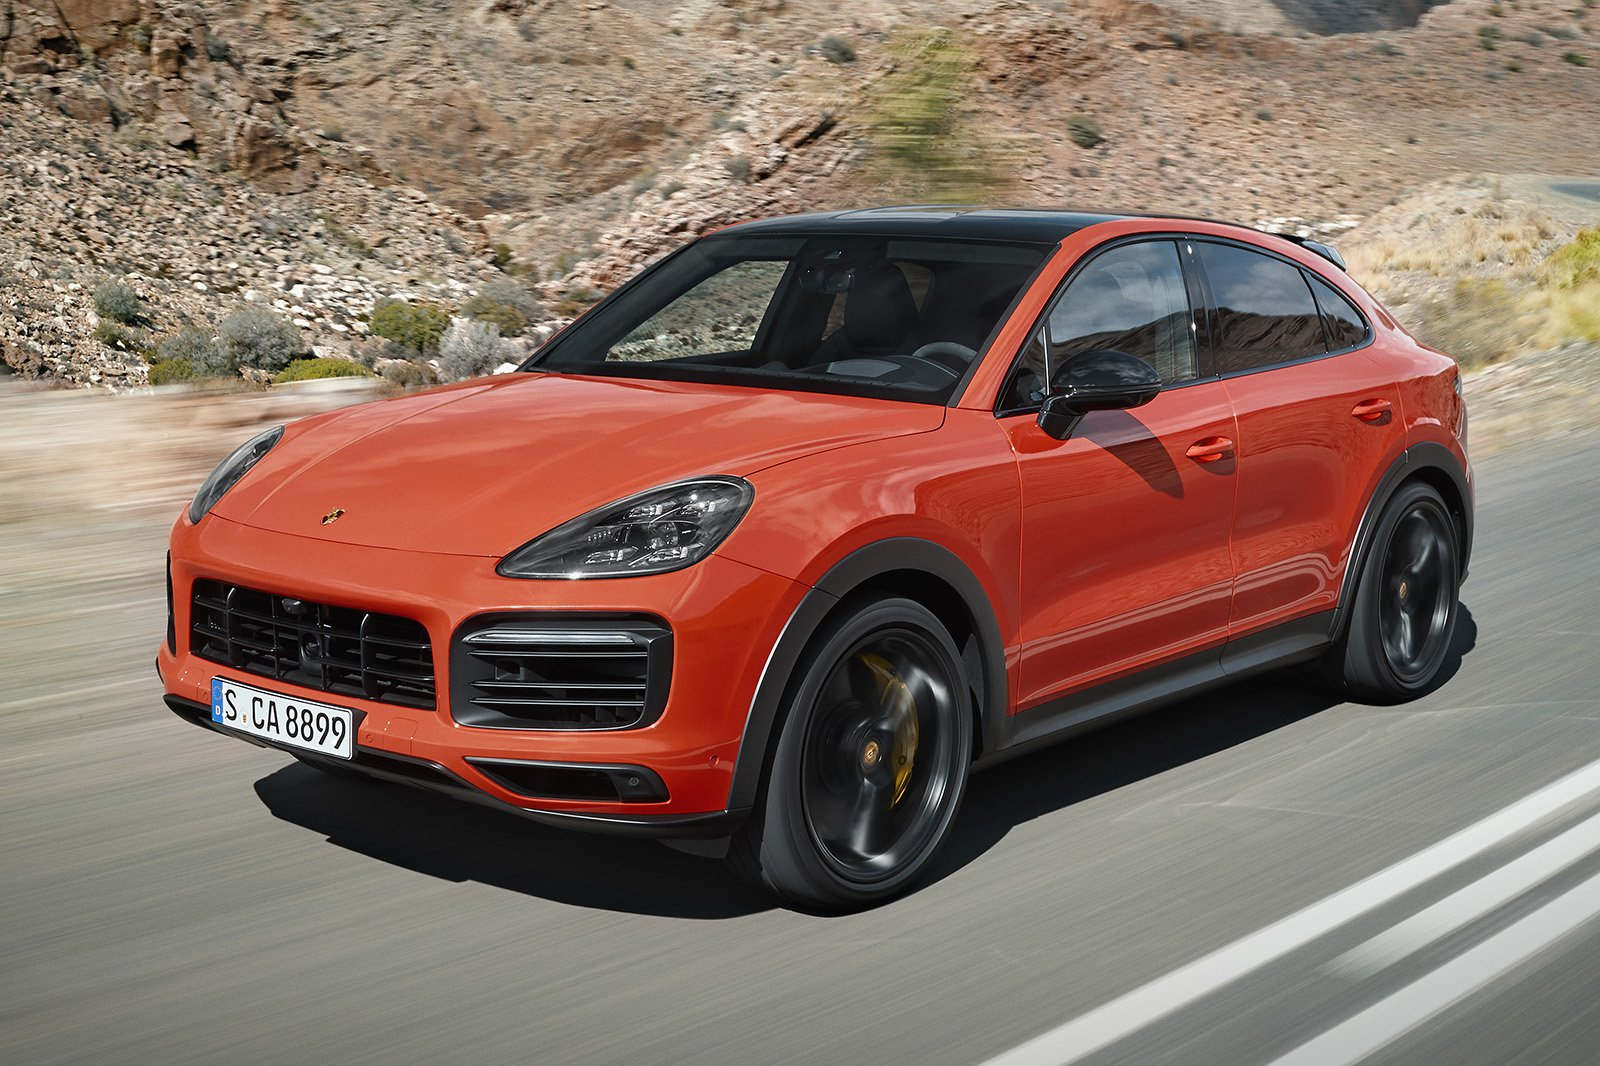 2019 Porsche Cayenne Coupe Suv Price Specs And Release Date What